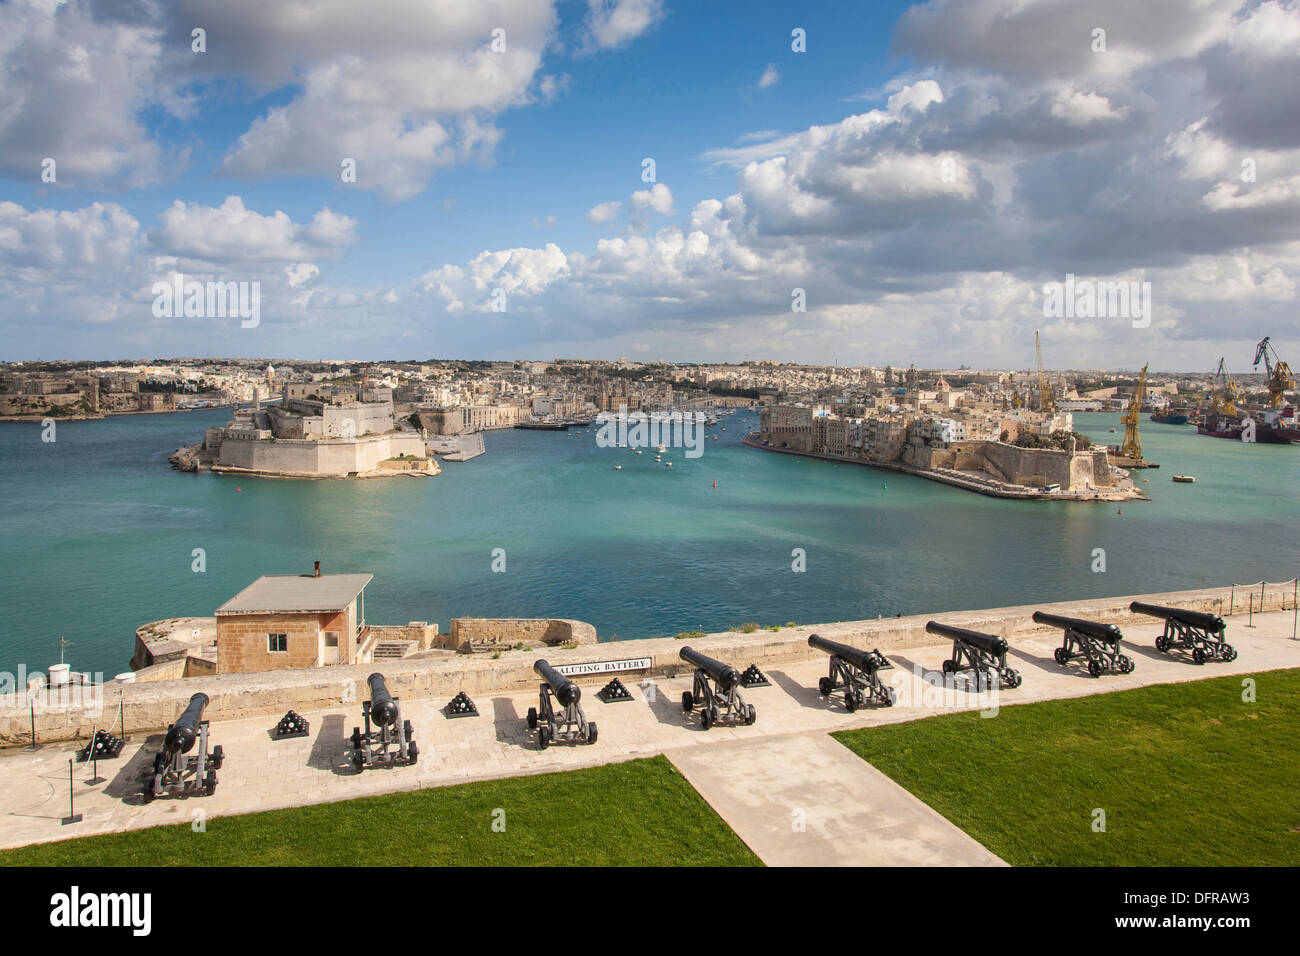 Europe Malta La Valletta Upper Barrakka garden La Vittoriosa Senglea city. Stock Photo